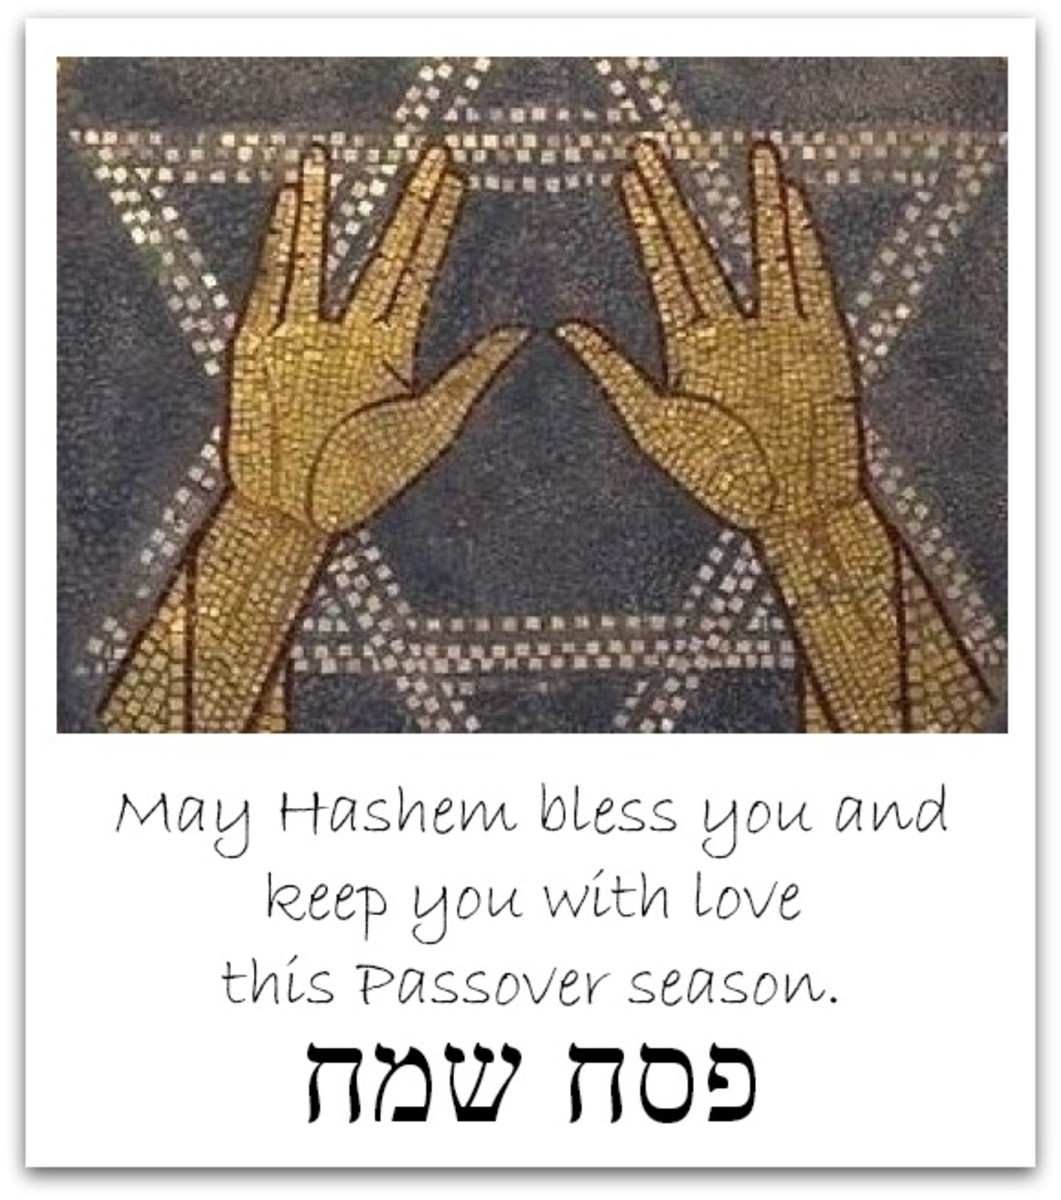 Happy passover find a cool passover greeting hubpages happy passover priestly blessing m4hsunfo